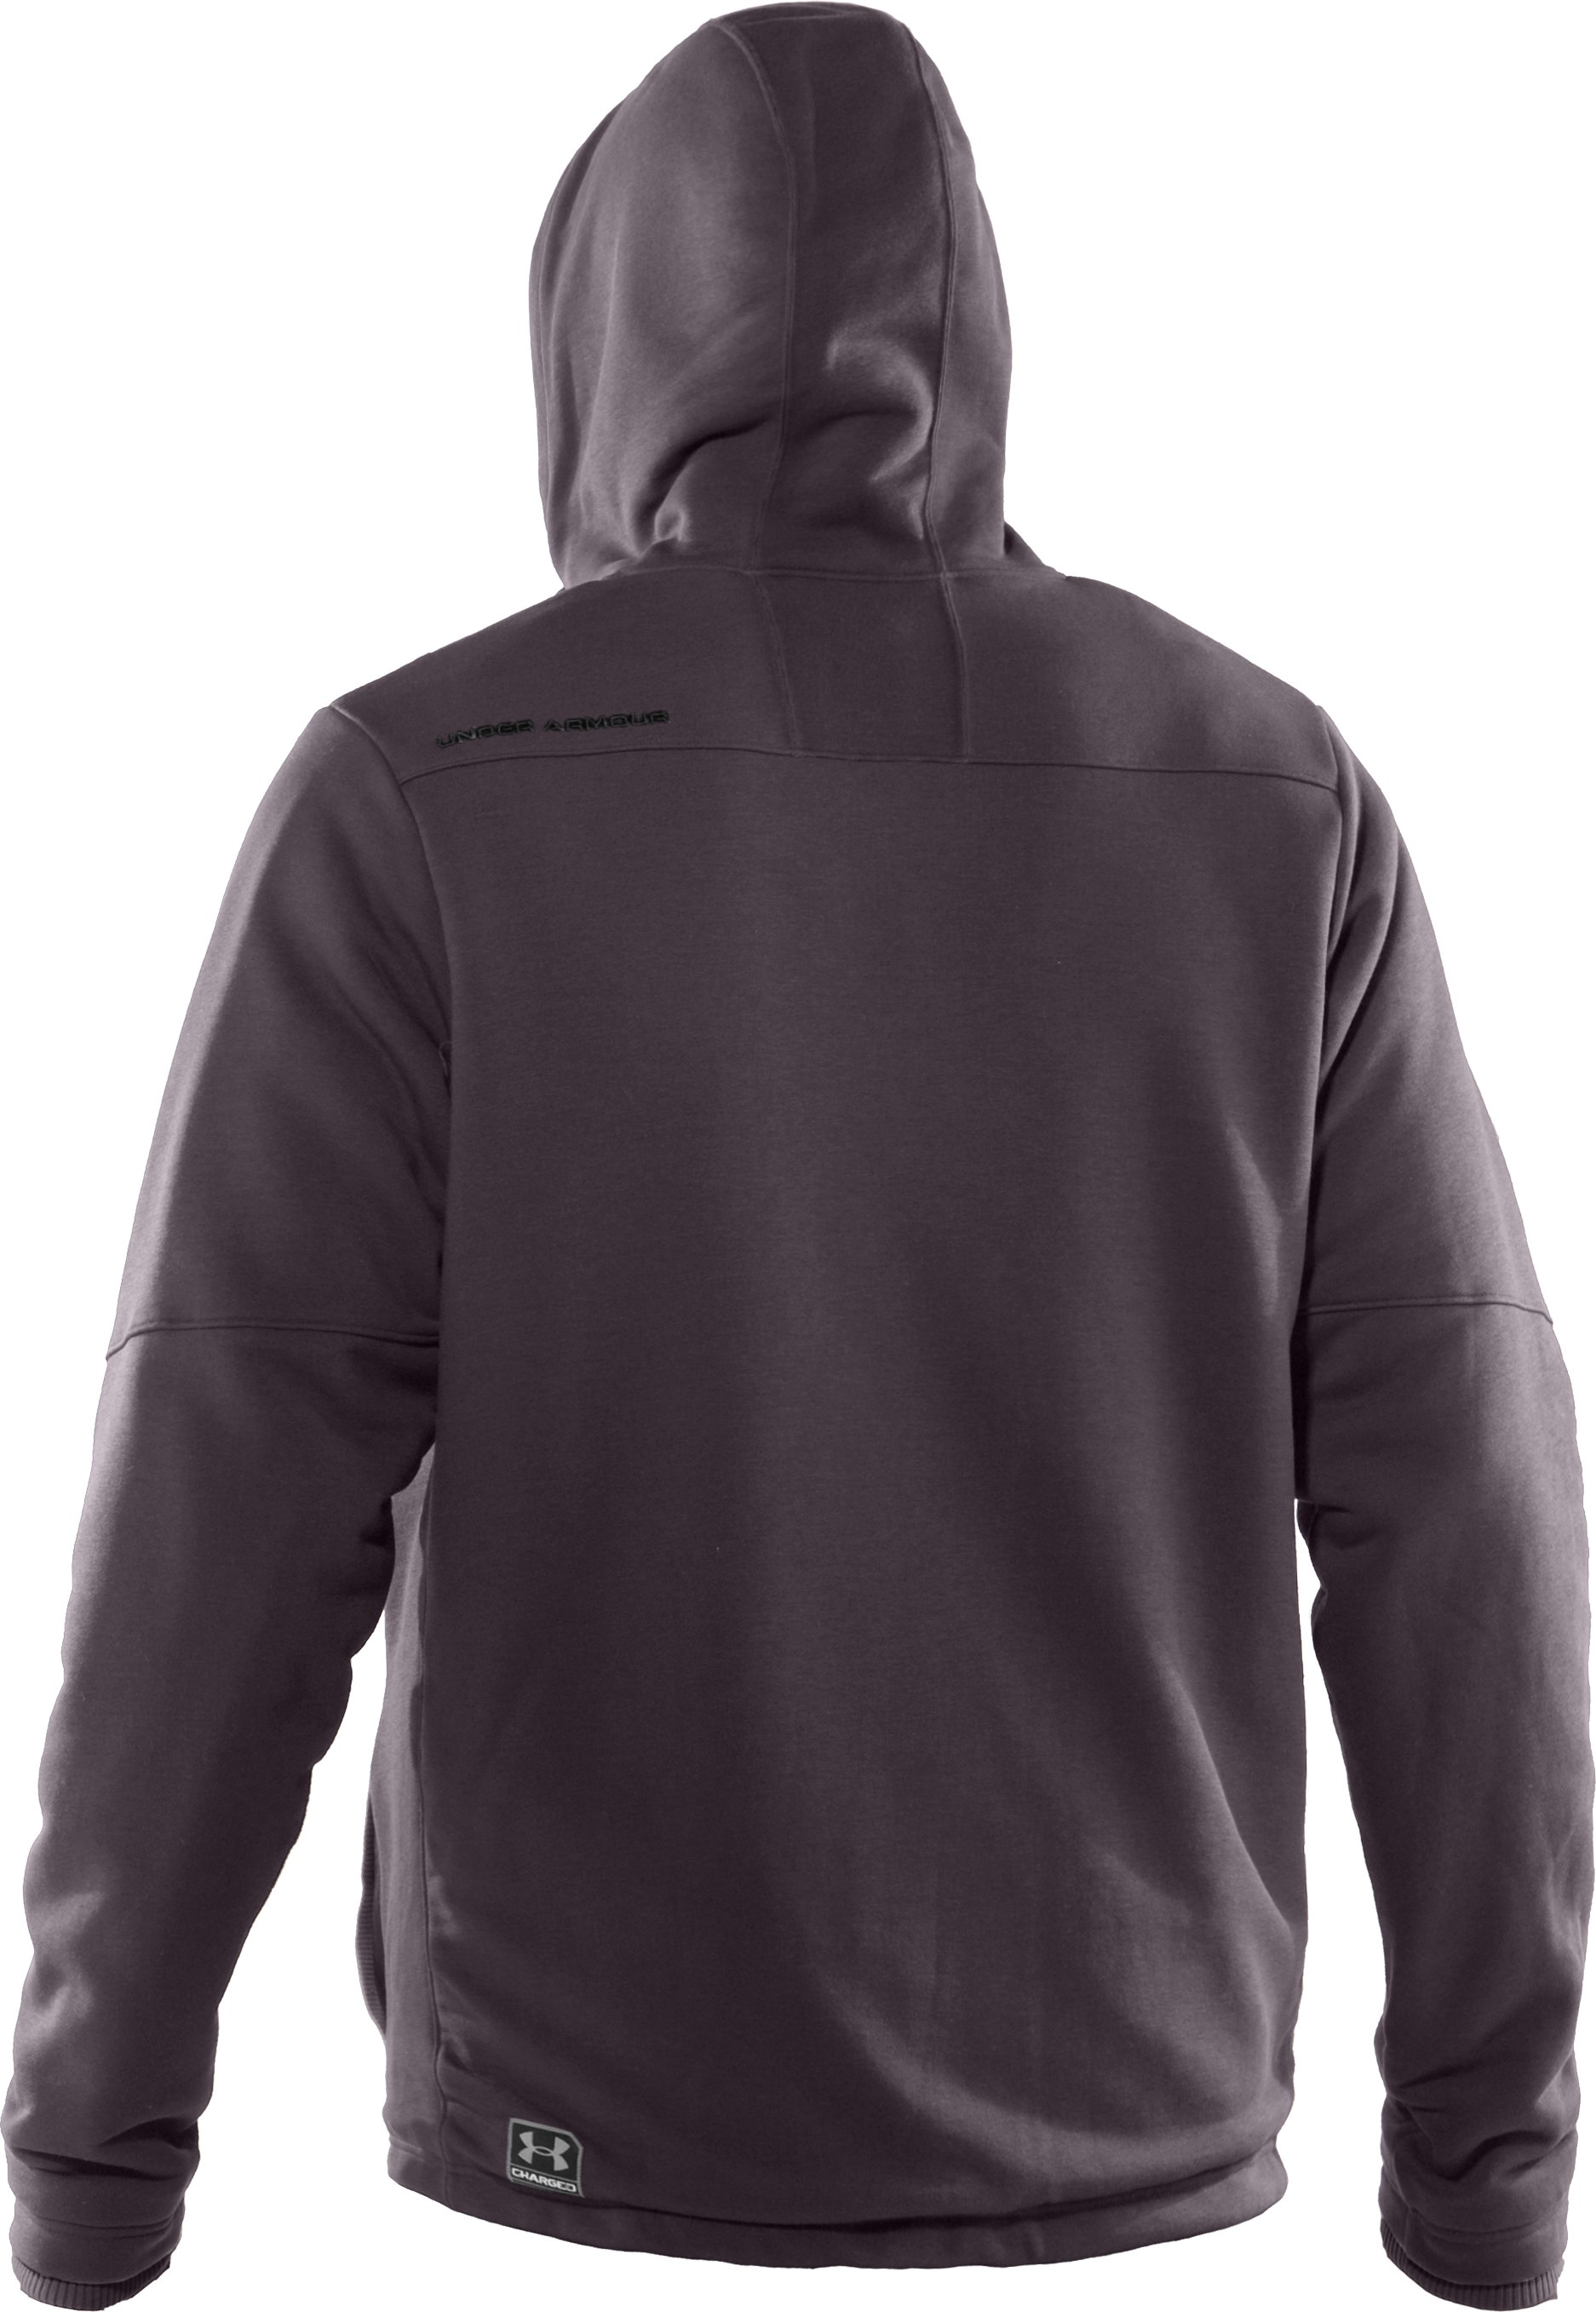 Men's UA Charged Cotton® Storm Sherpa Fleece Full Zip Hoodie, Charcoal